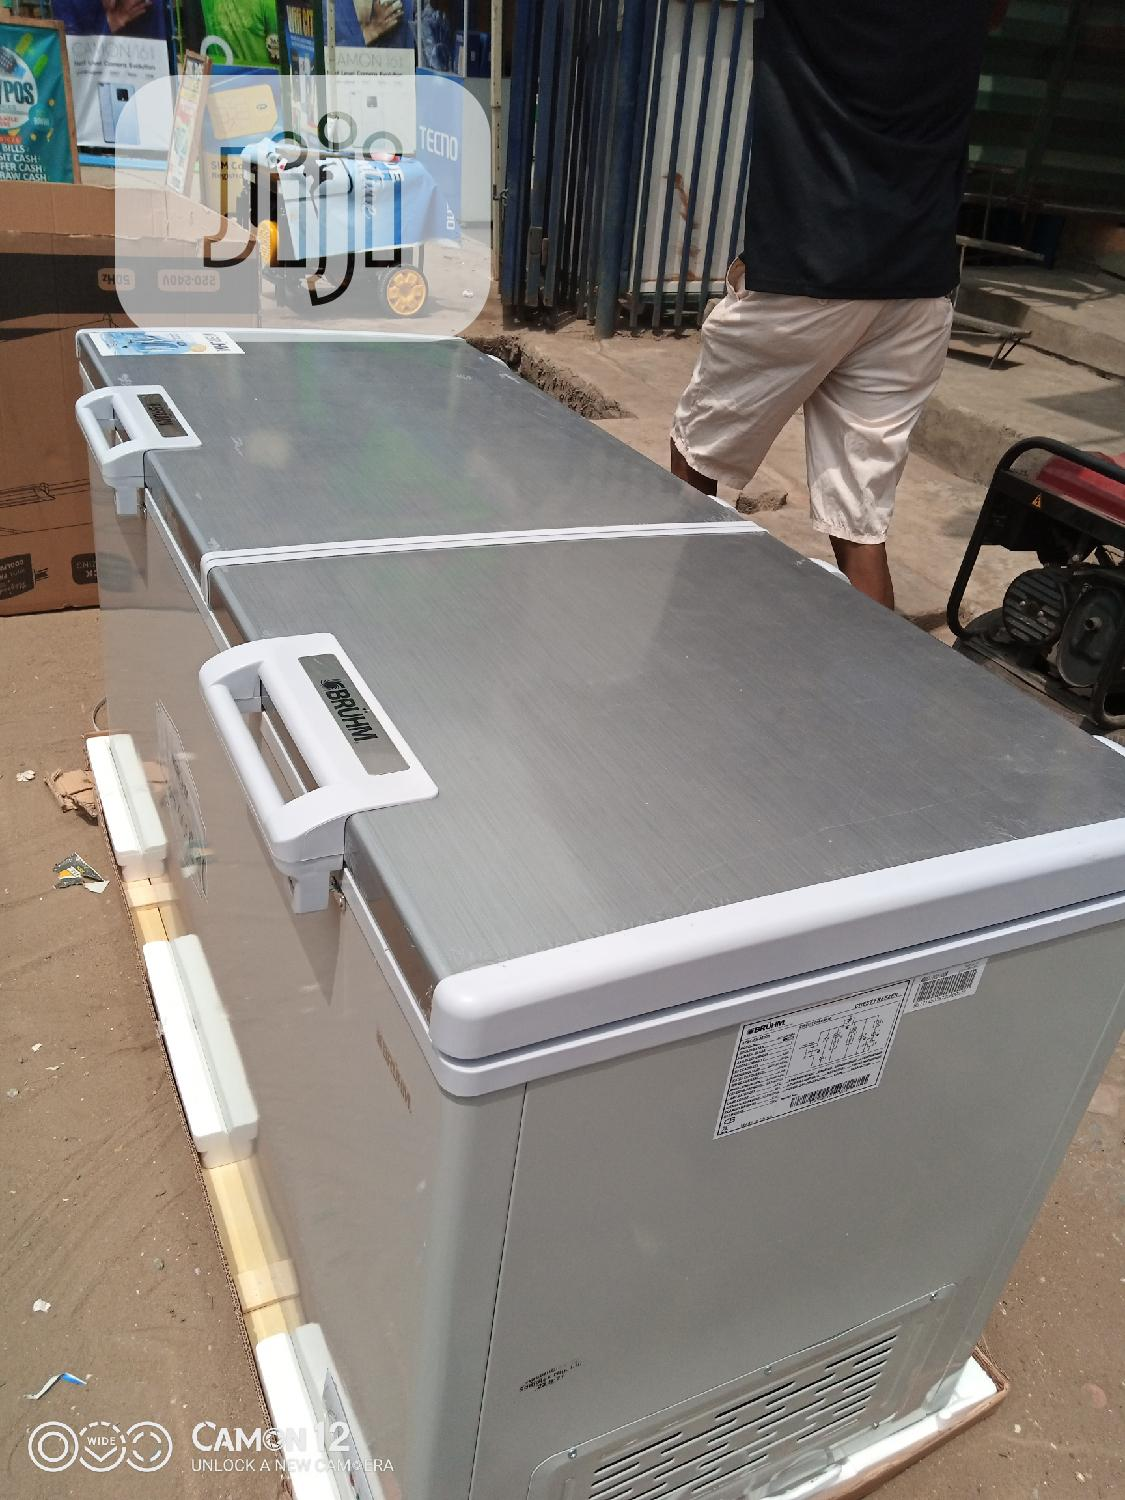 Brhum Double Door Chest Freezer Bcd 500 M | Kitchen Appliances for sale in Ojo, Lagos State, Nigeria